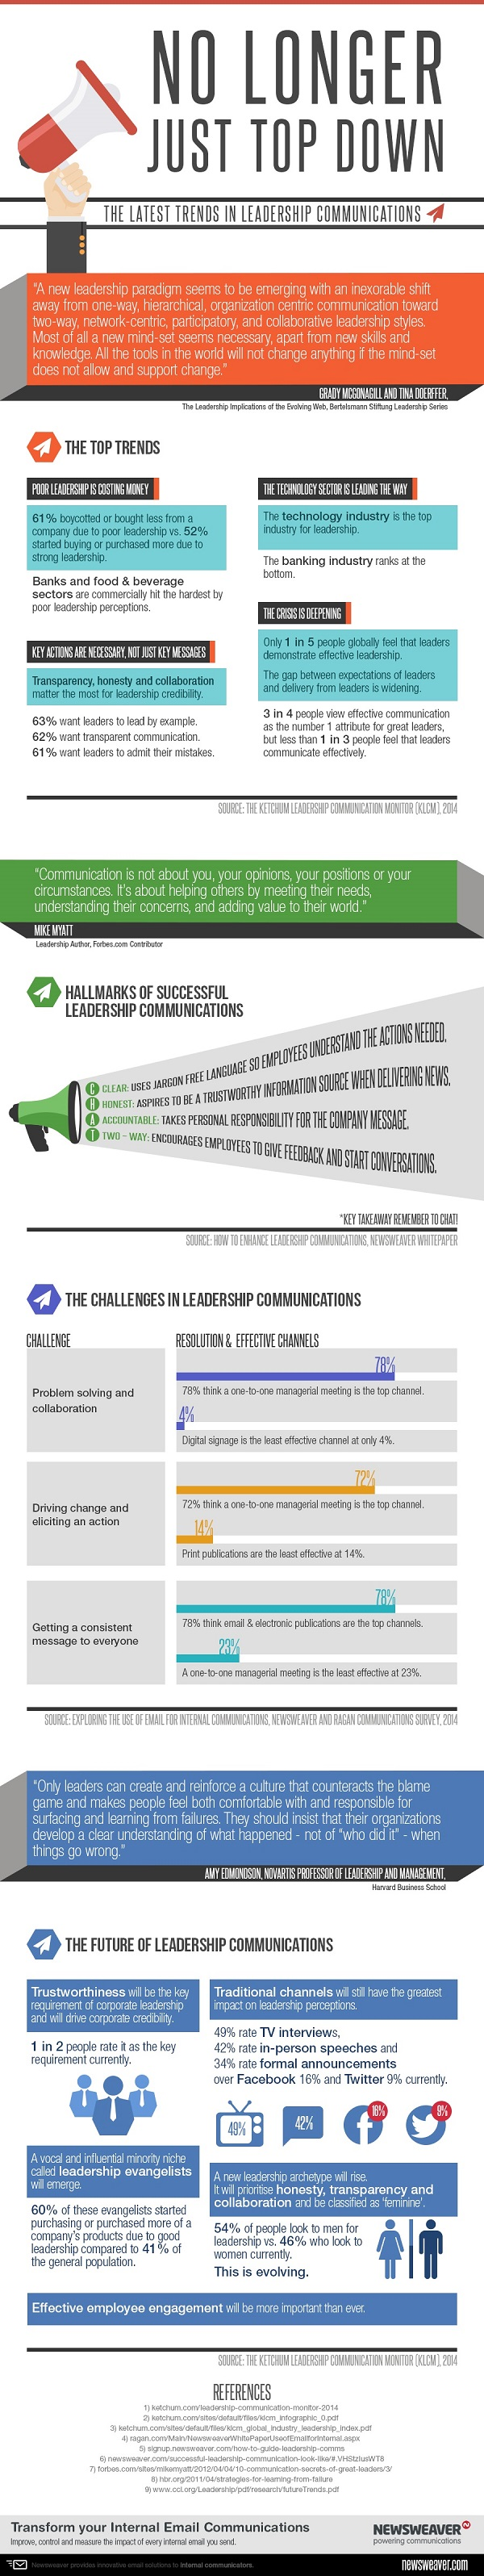 Latest Trends in Leadership Communications